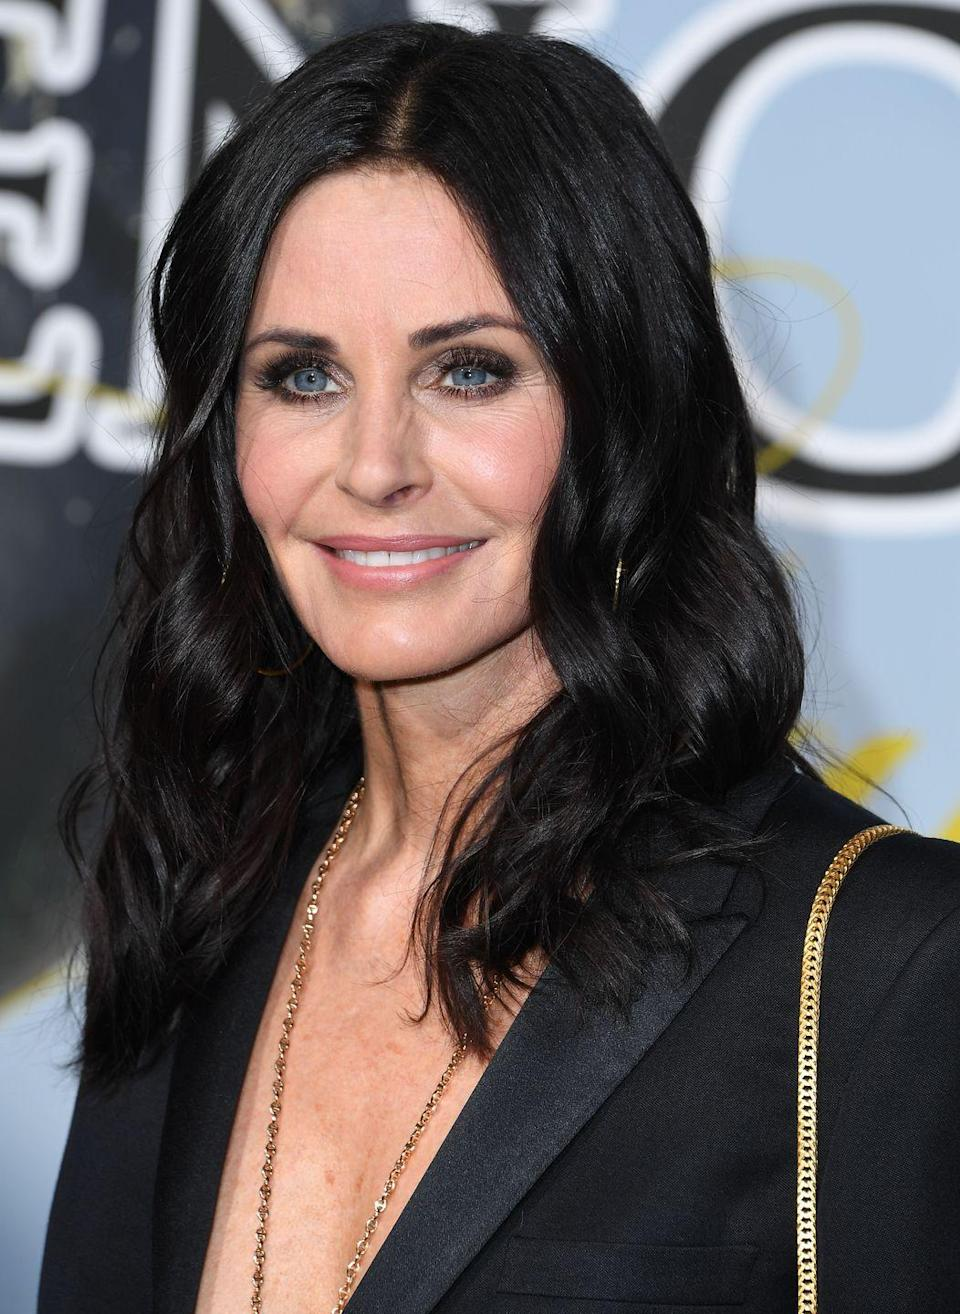 """<p>The <em>Cougar Town</em> star works out with celeb trainer Michelle Lovitt, who also trains Julianne Moore and Julia Luis-Dreyfus. <a href=""""https://www.self.com/story/lifting-with-barbells-for-the-first-time"""" rel=""""nofollow noopener"""" target=""""_blank"""" data-ylk=""""slk:According to Lovitt"""" class=""""link rapid-noclick-resp"""">According to Lovitt</a>, Cox's workouts include <a href=""""https://www.prevention.com/fitness/fitness-tips/a26765994/benefits-of-lifting-weights/"""" rel=""""nofollow noopener"""" target=""""_blank"""" data-ylk=""""slk:strength training"""" class=""""link rapid-noclick-resp"""">strength training </a>with barbells and plenty of high-intensity supersets.</p>"""